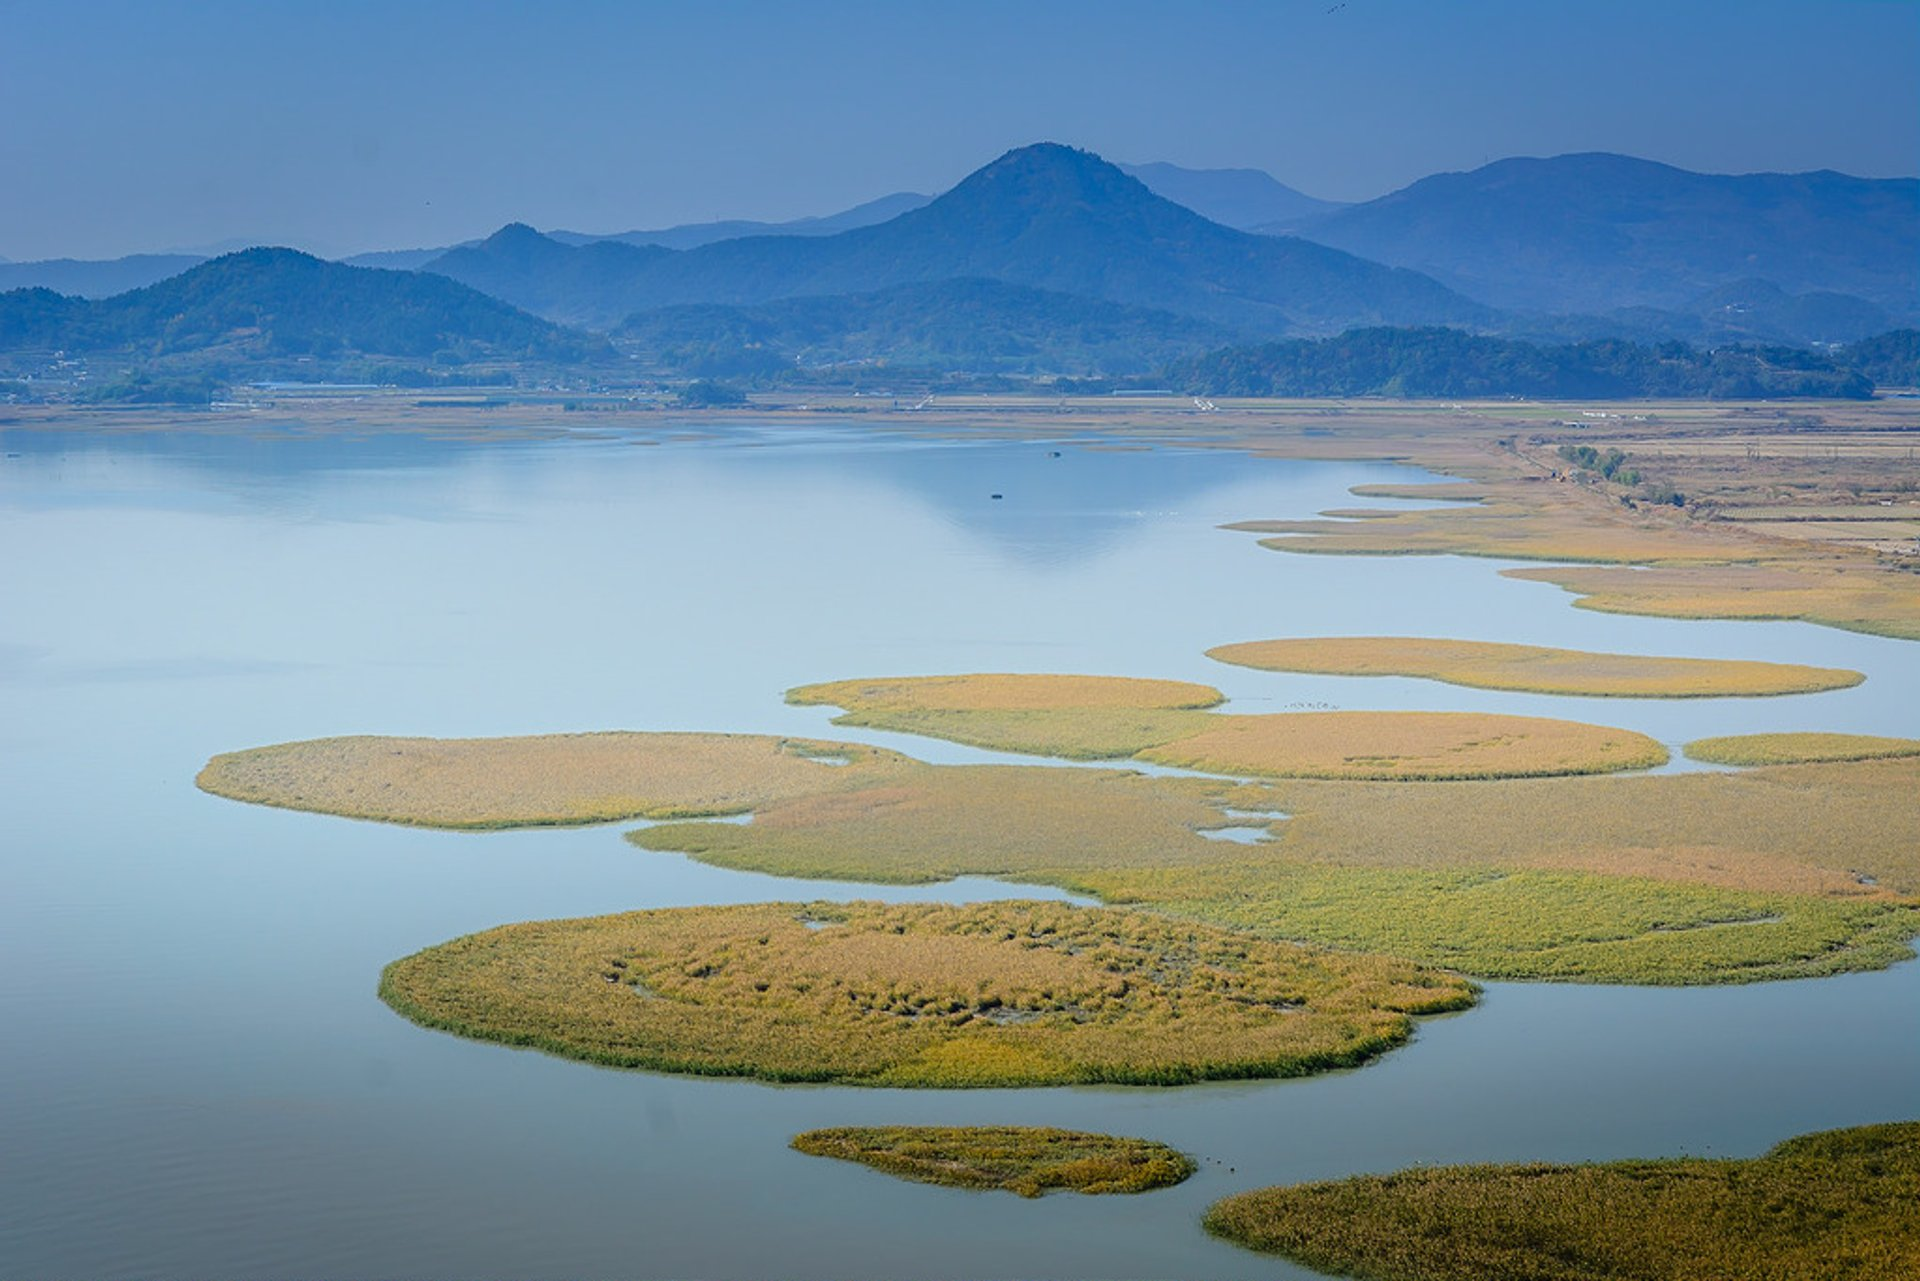 Suncheon Bay Wetland Reserve in South Korea 2020 - Best Time